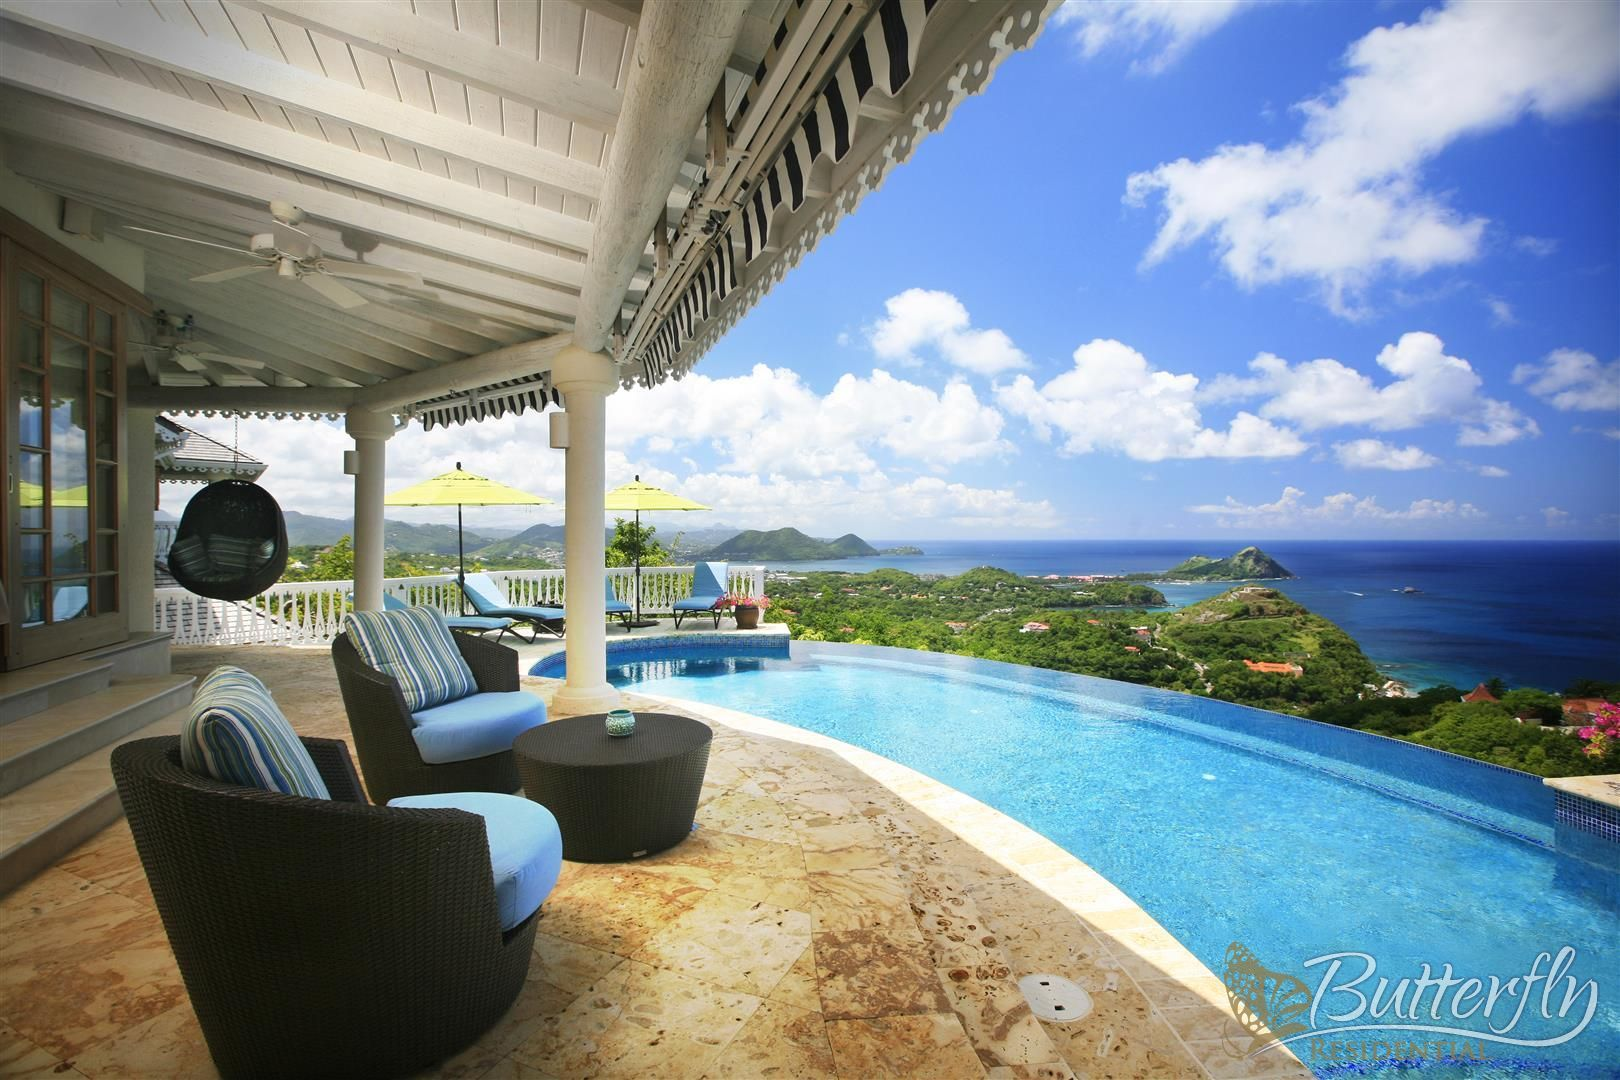 how to get from st lucia to barbados